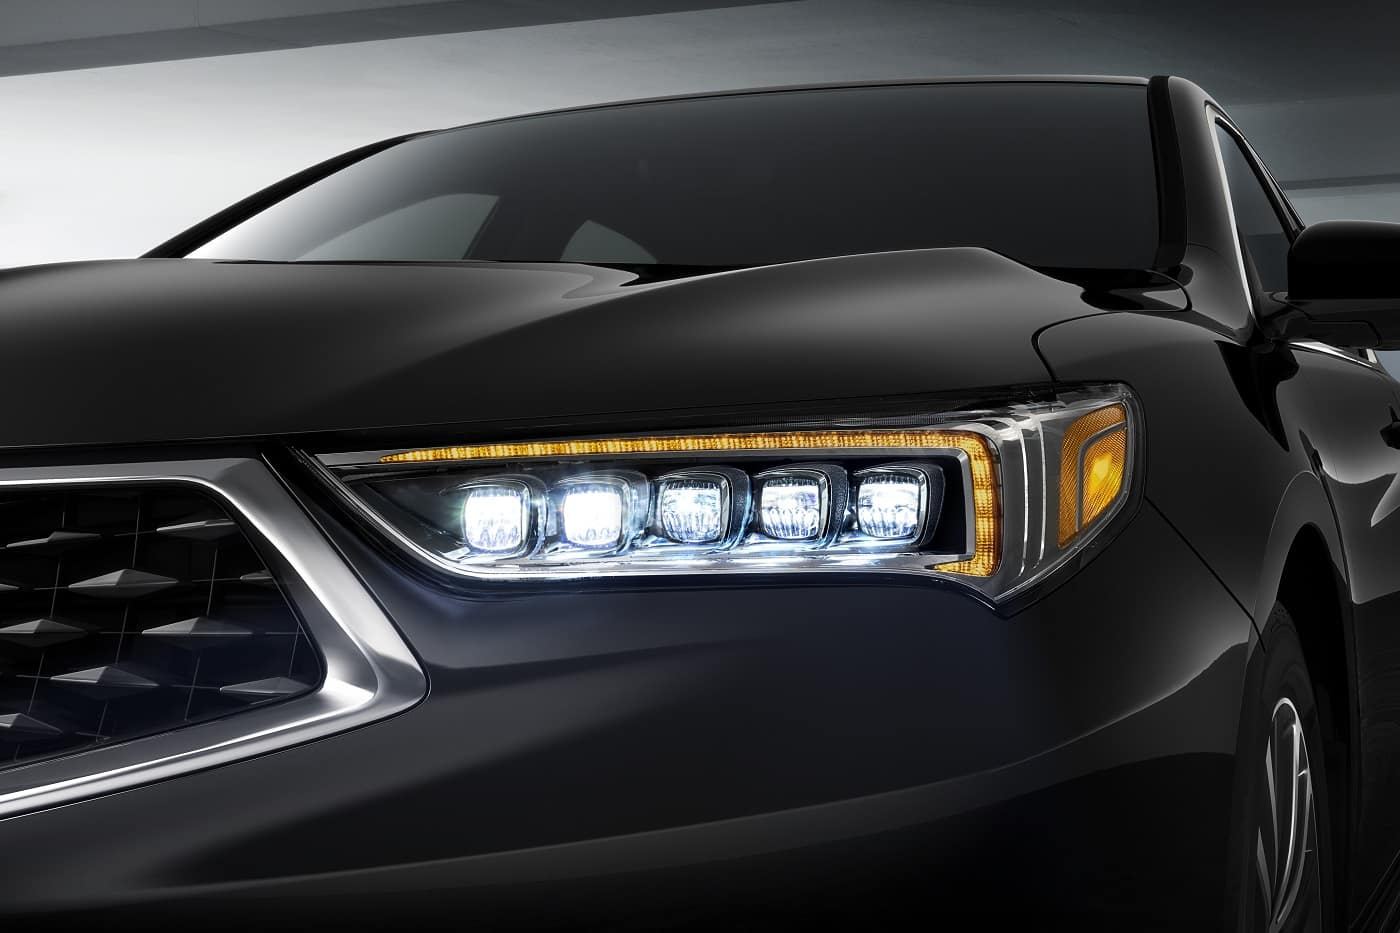 Acura TLX Headlights